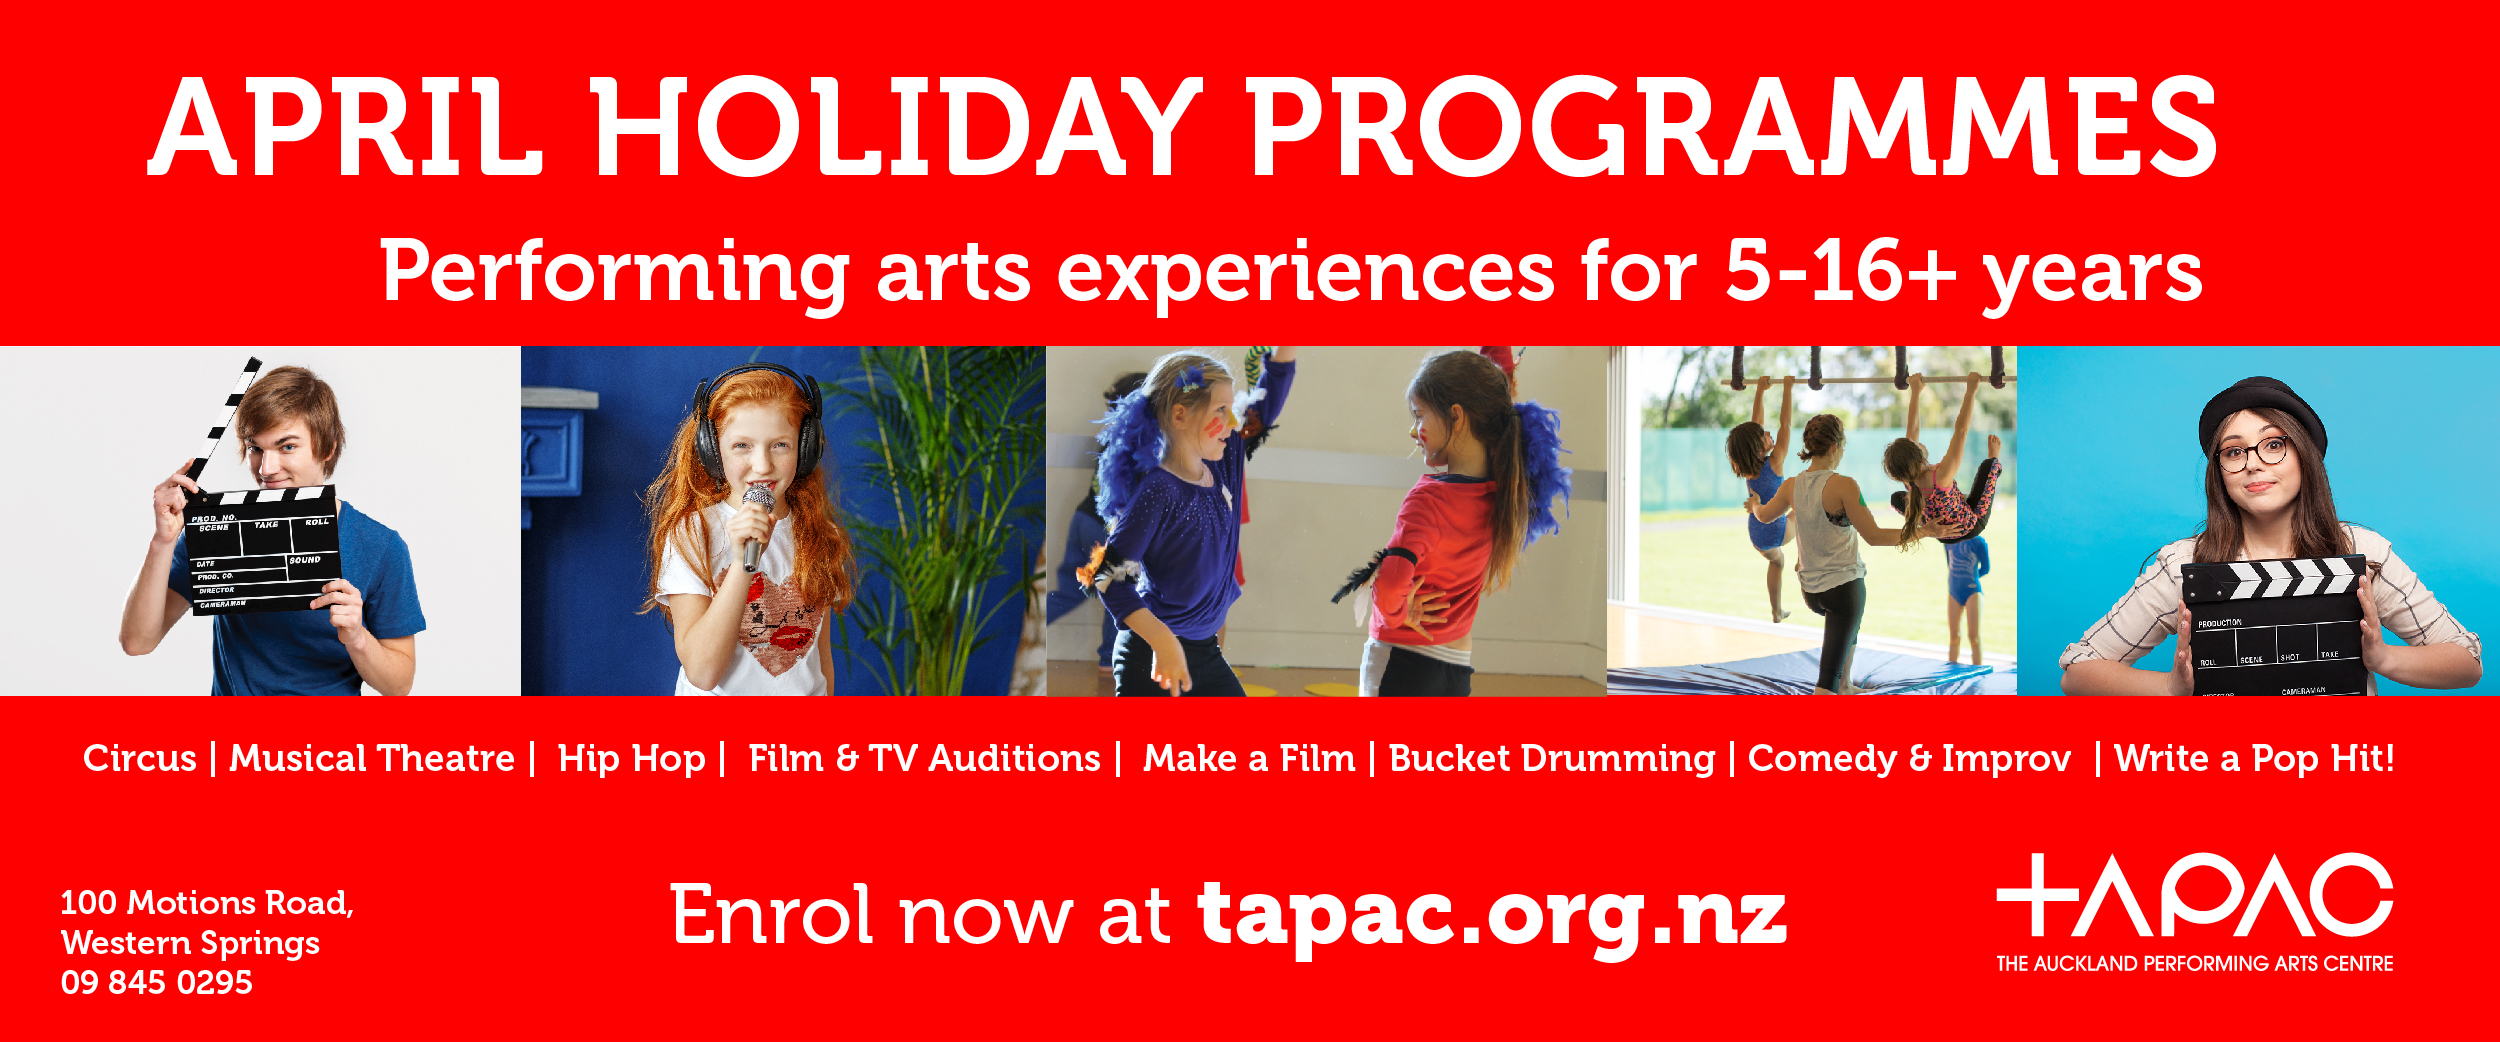 TAPAC April Holiday Programme All Ages